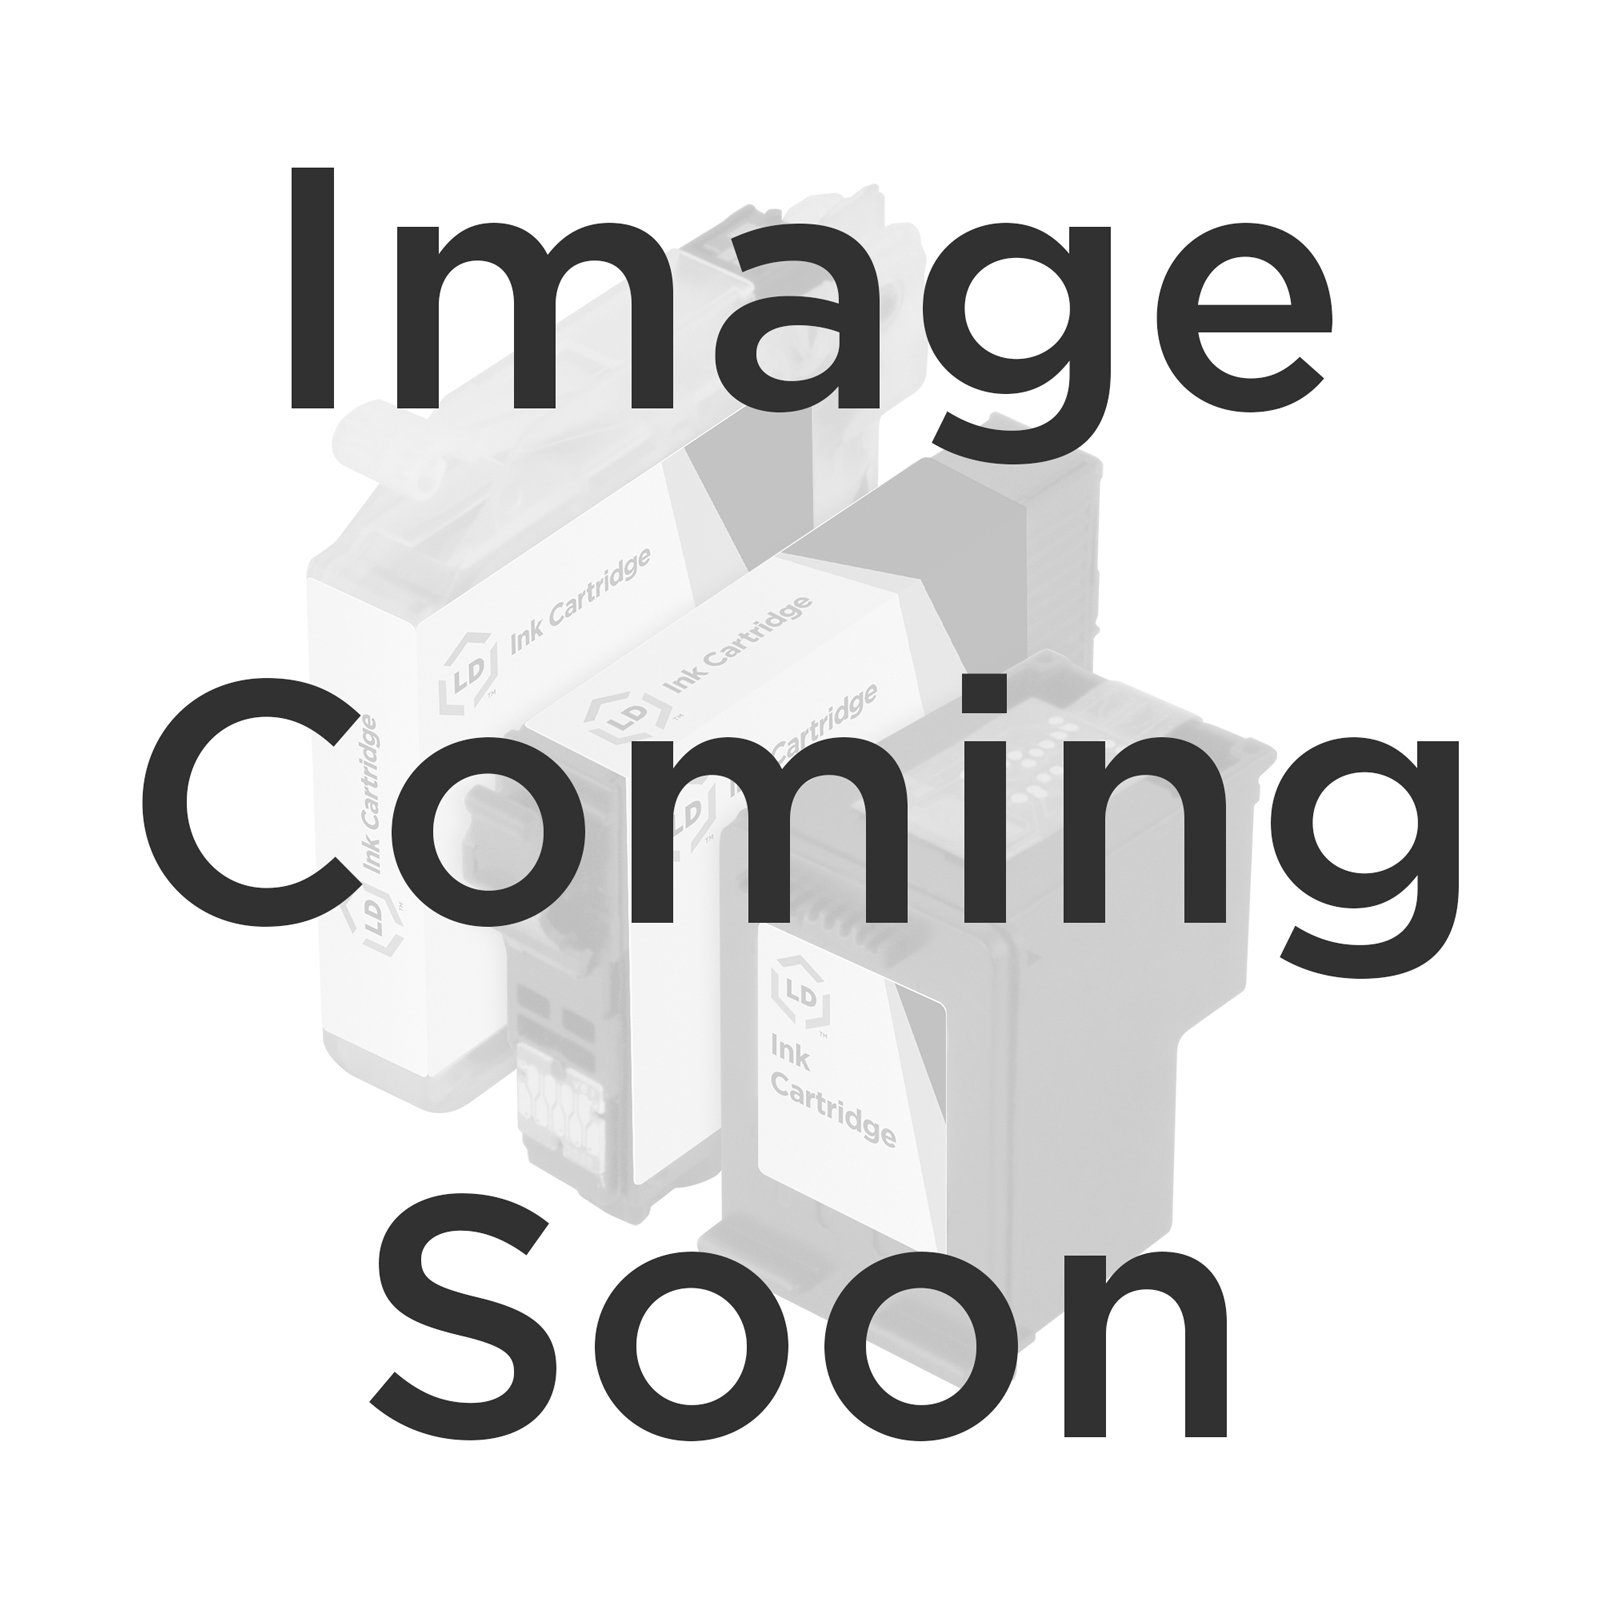 PM SecurIT $500 Coin Box (Quarters) - 1200 per carton